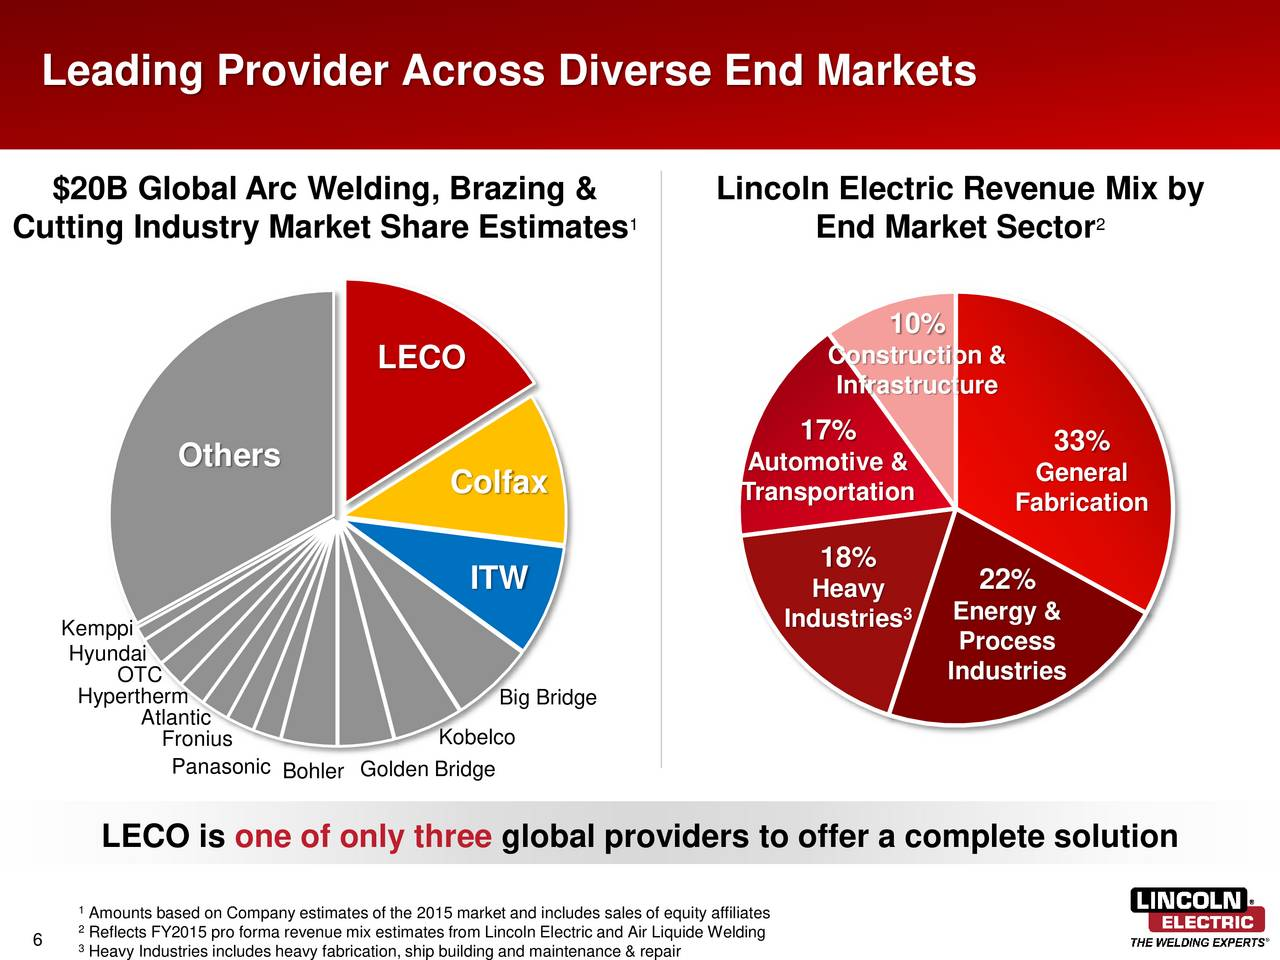 Lincoln Electric Holdings Leco Presents At 10th Annual